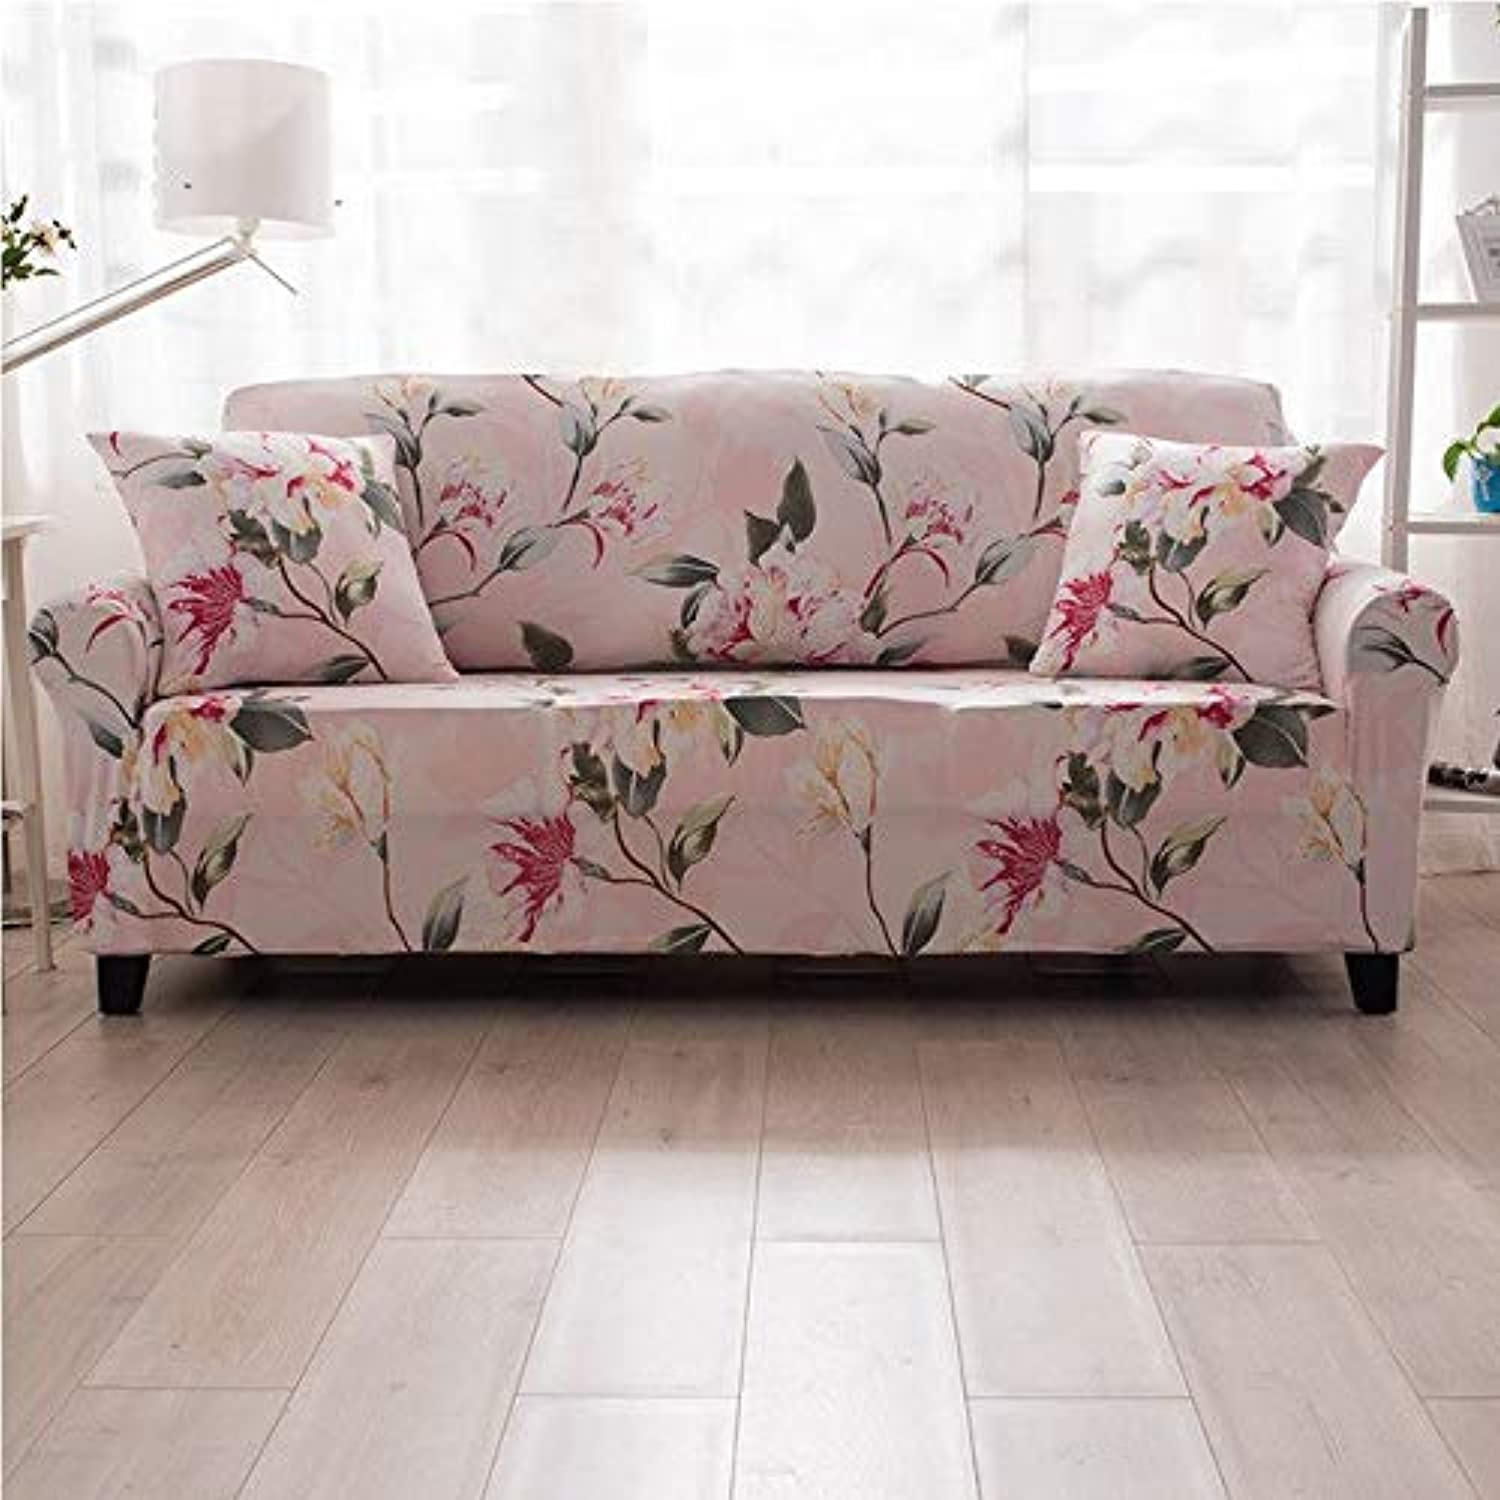 Elastic Sofa Cover Flower Geometric Slipcover Tight Wrap All-Inclusive Slip-Resistant Spandex Single Double Three Four Seat 003   G, Four seat